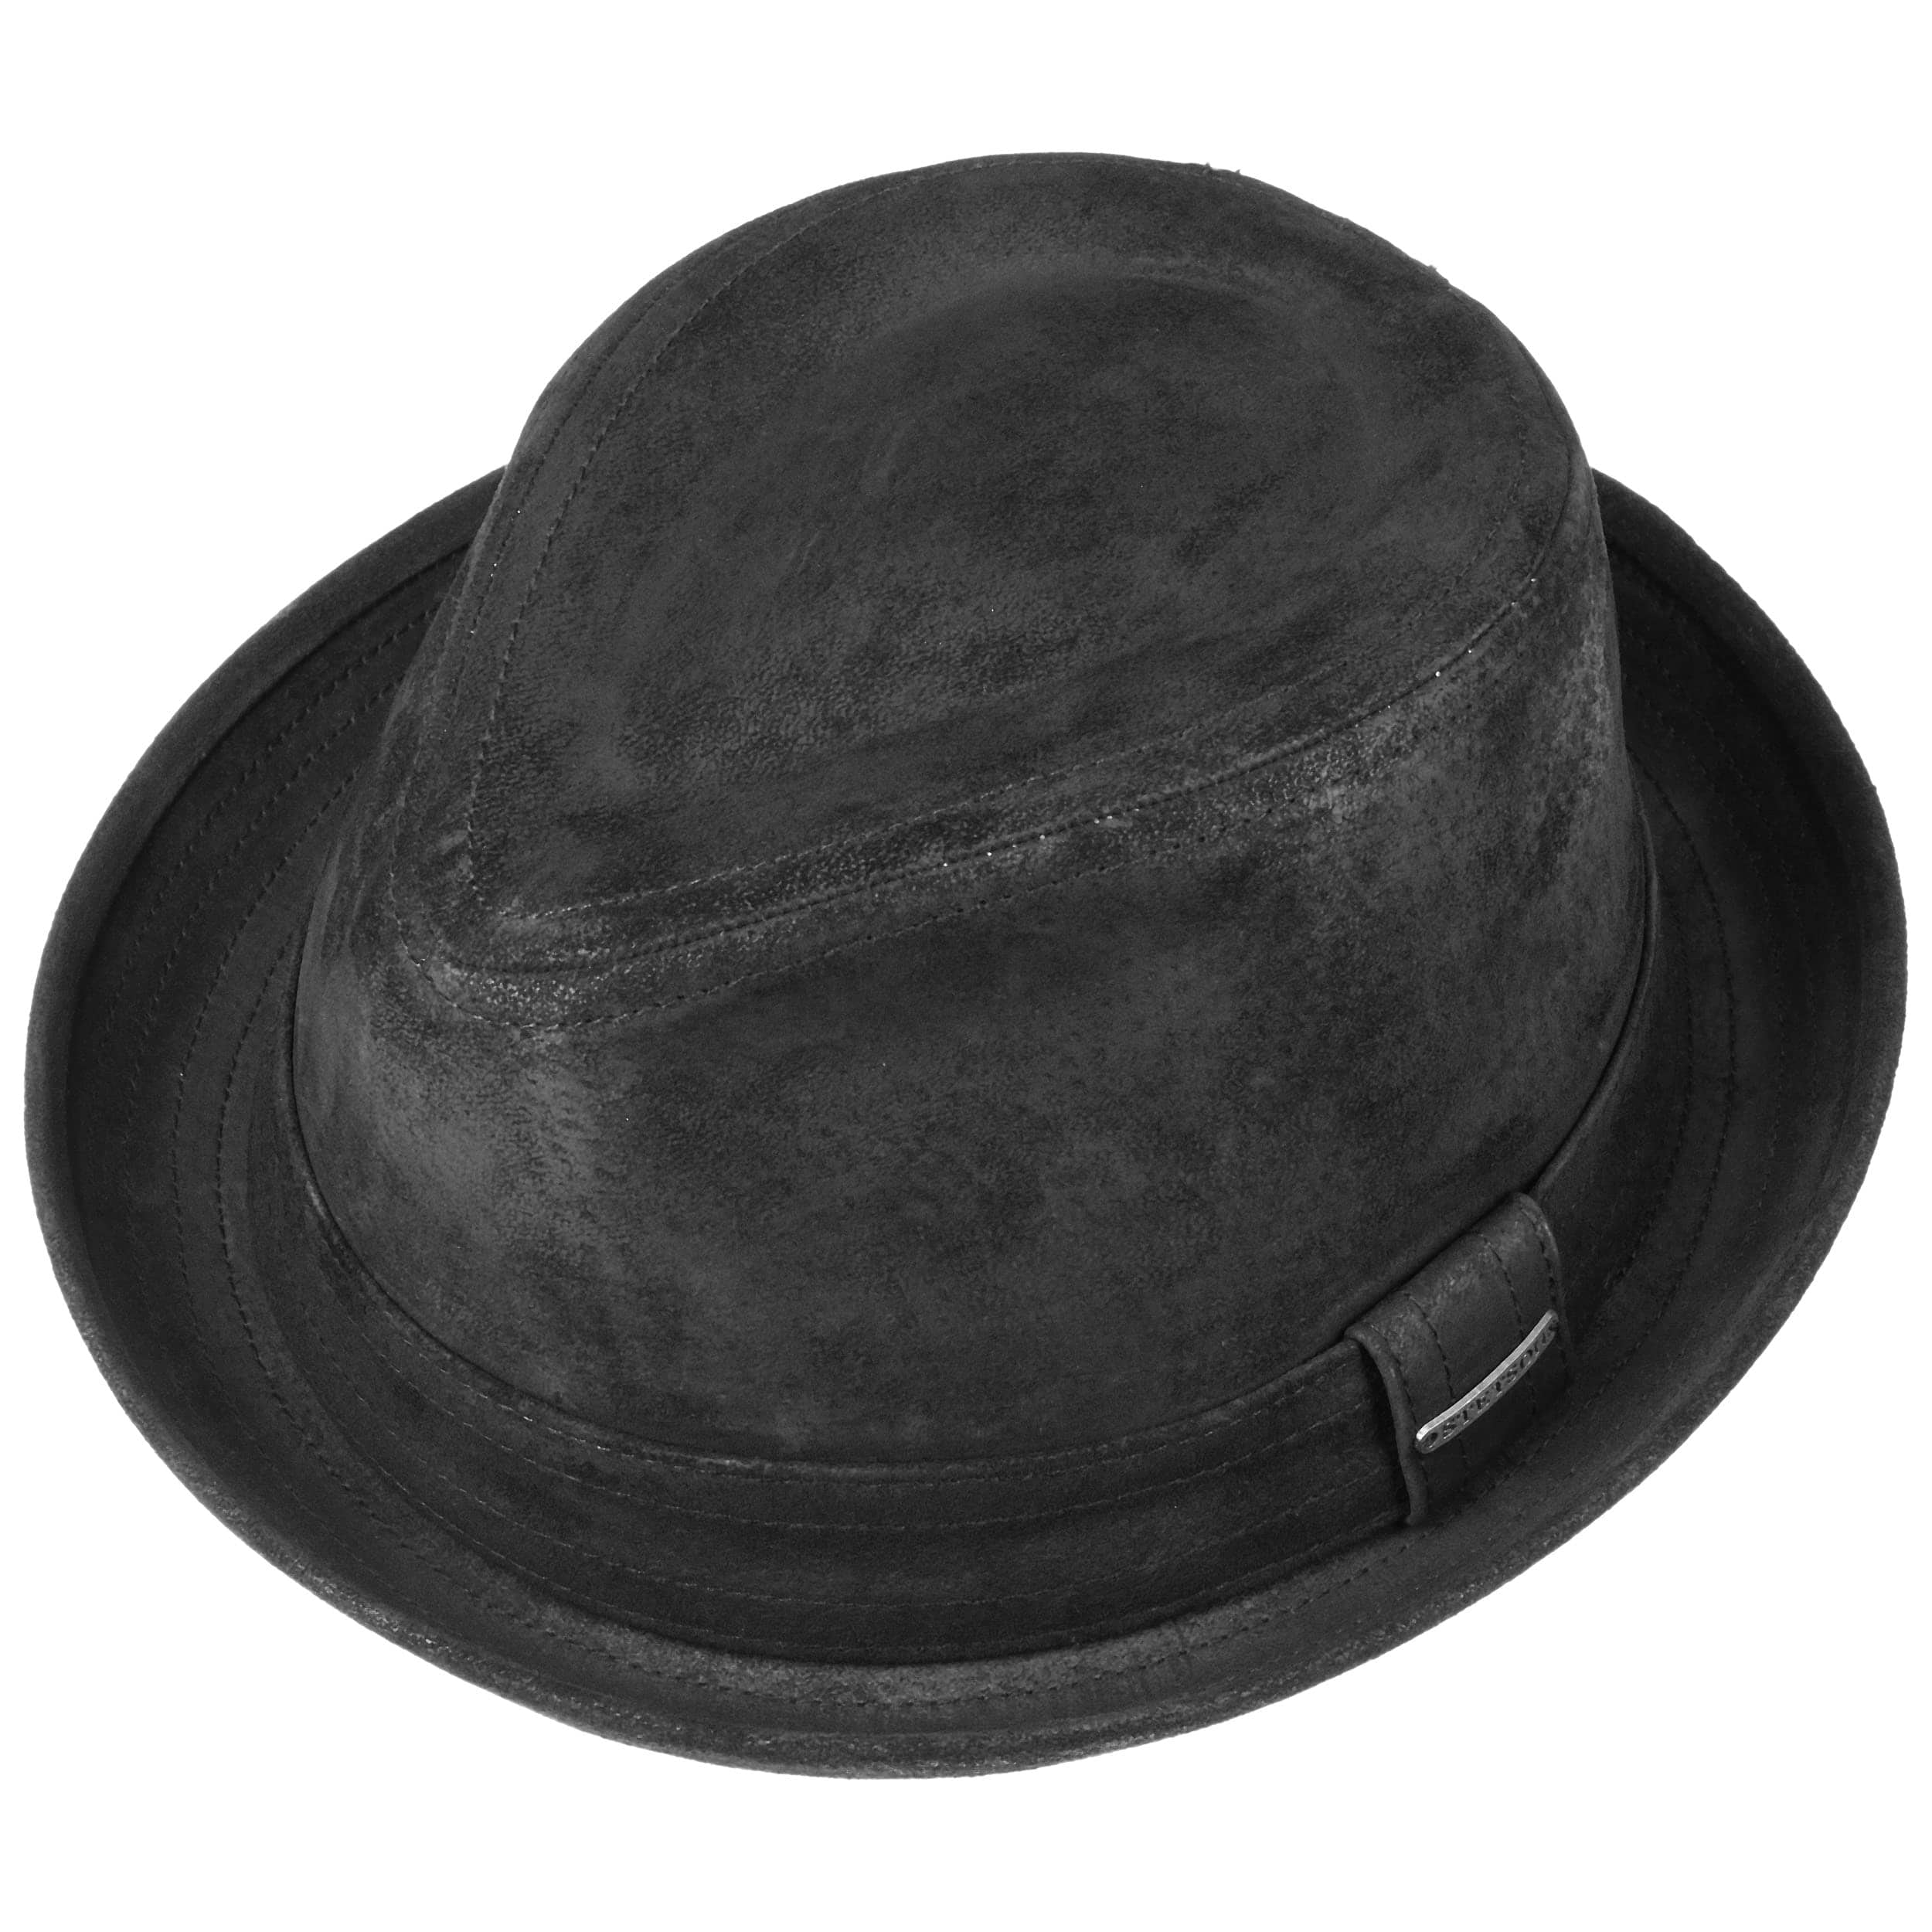 68bde0bd10c3b Radcliff Leather Player by Stetson - black 1 ...